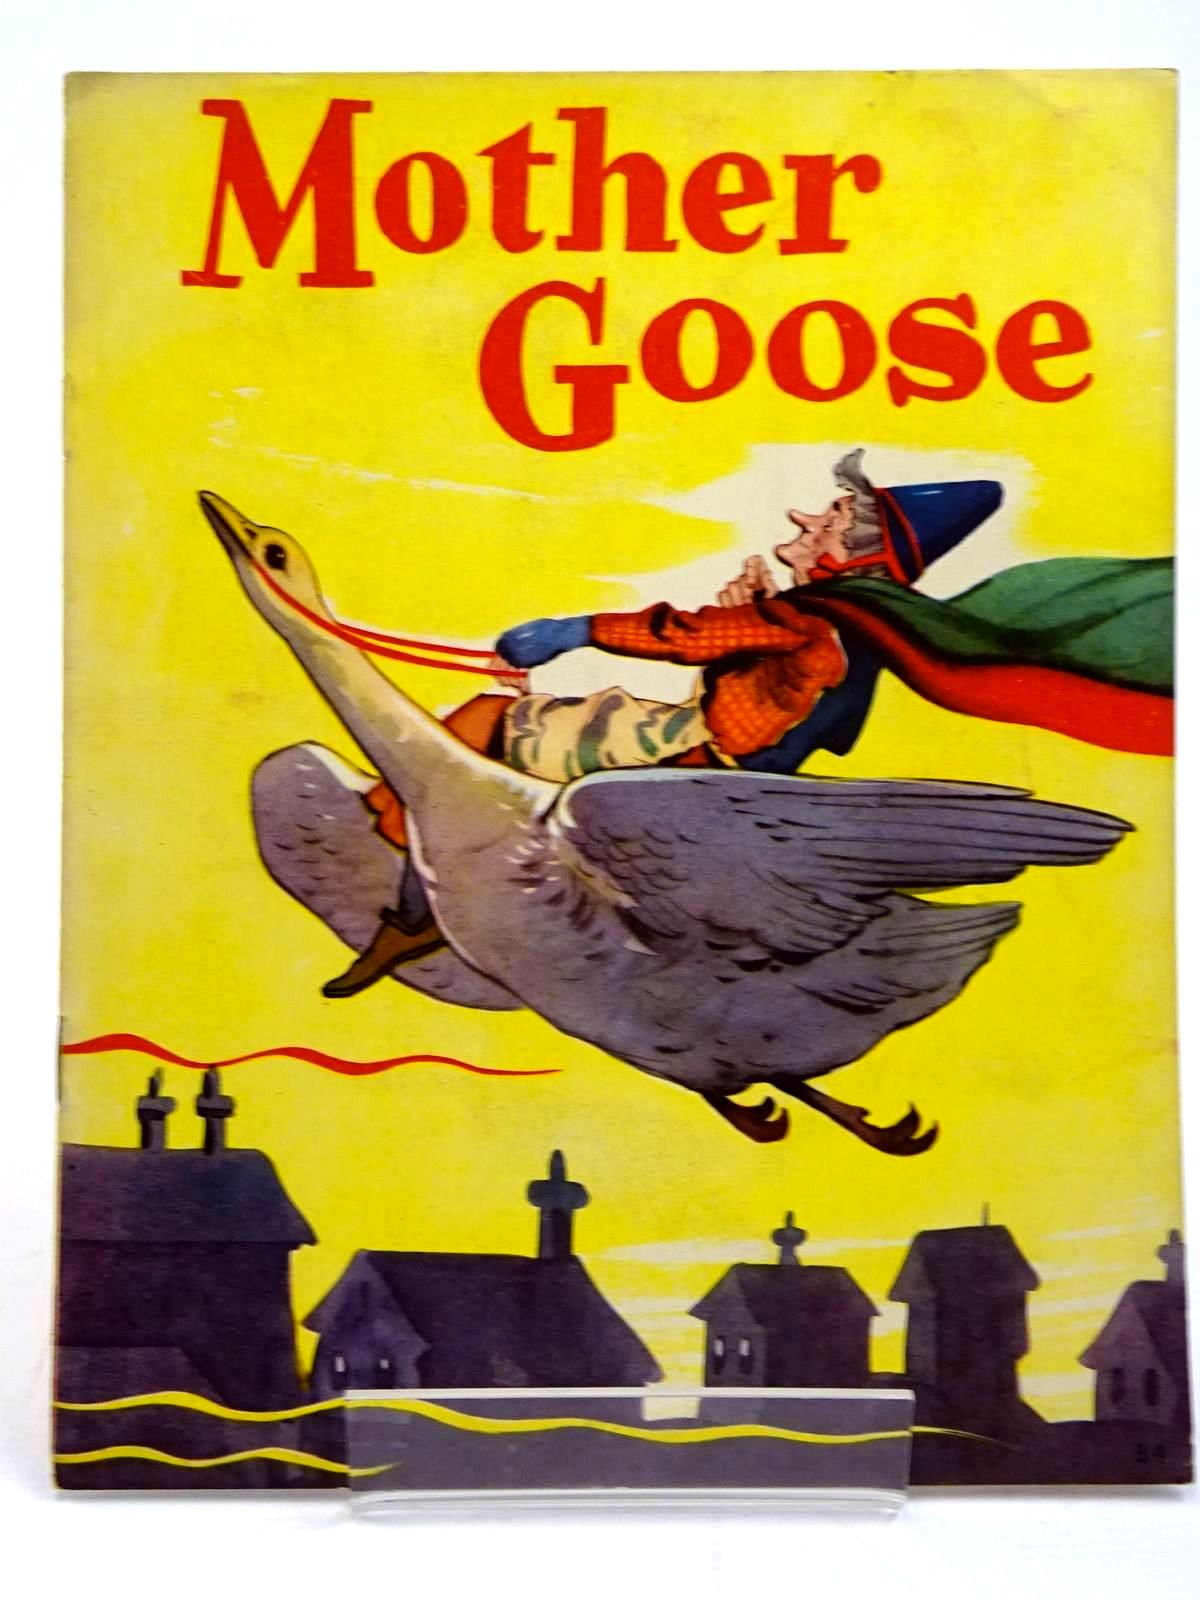 Photo of MOTHER GOOSE published by Wm. Collins Sons & Co. Ltd. (STOCK CODE: 2131562)  for sale by Stella & Rose's Books